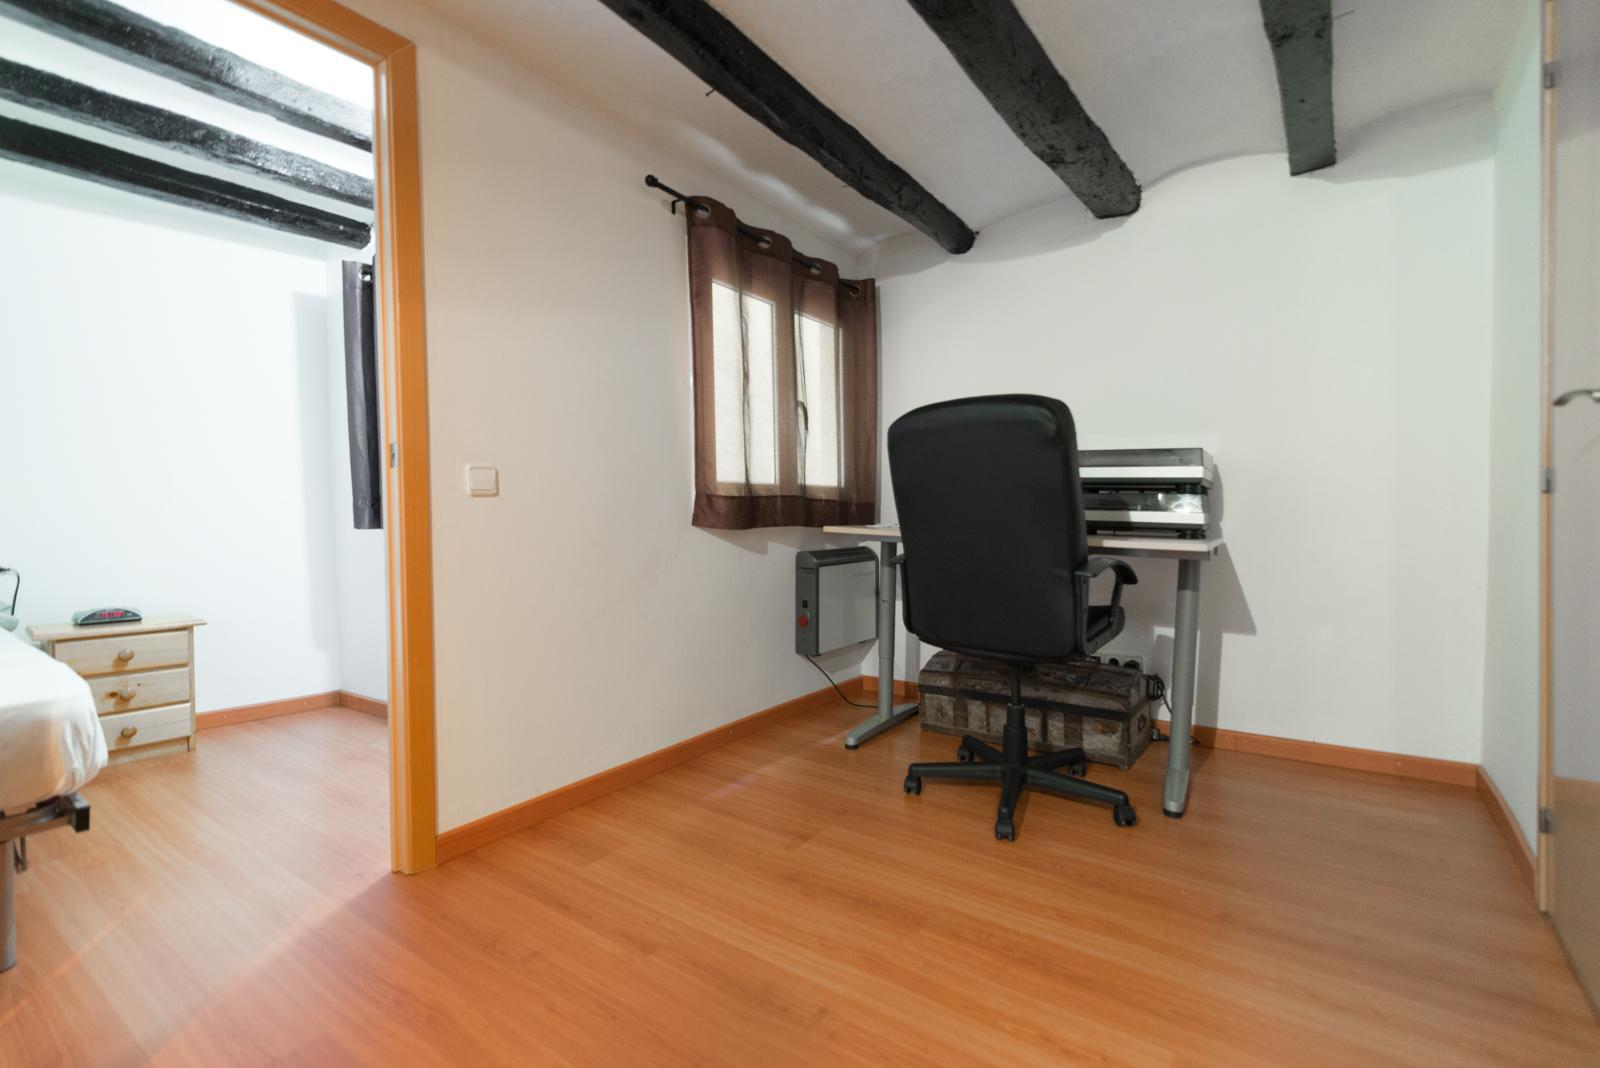 207708 Ground Floor for sale in Ciutat Vella, Barri Gòtic 12